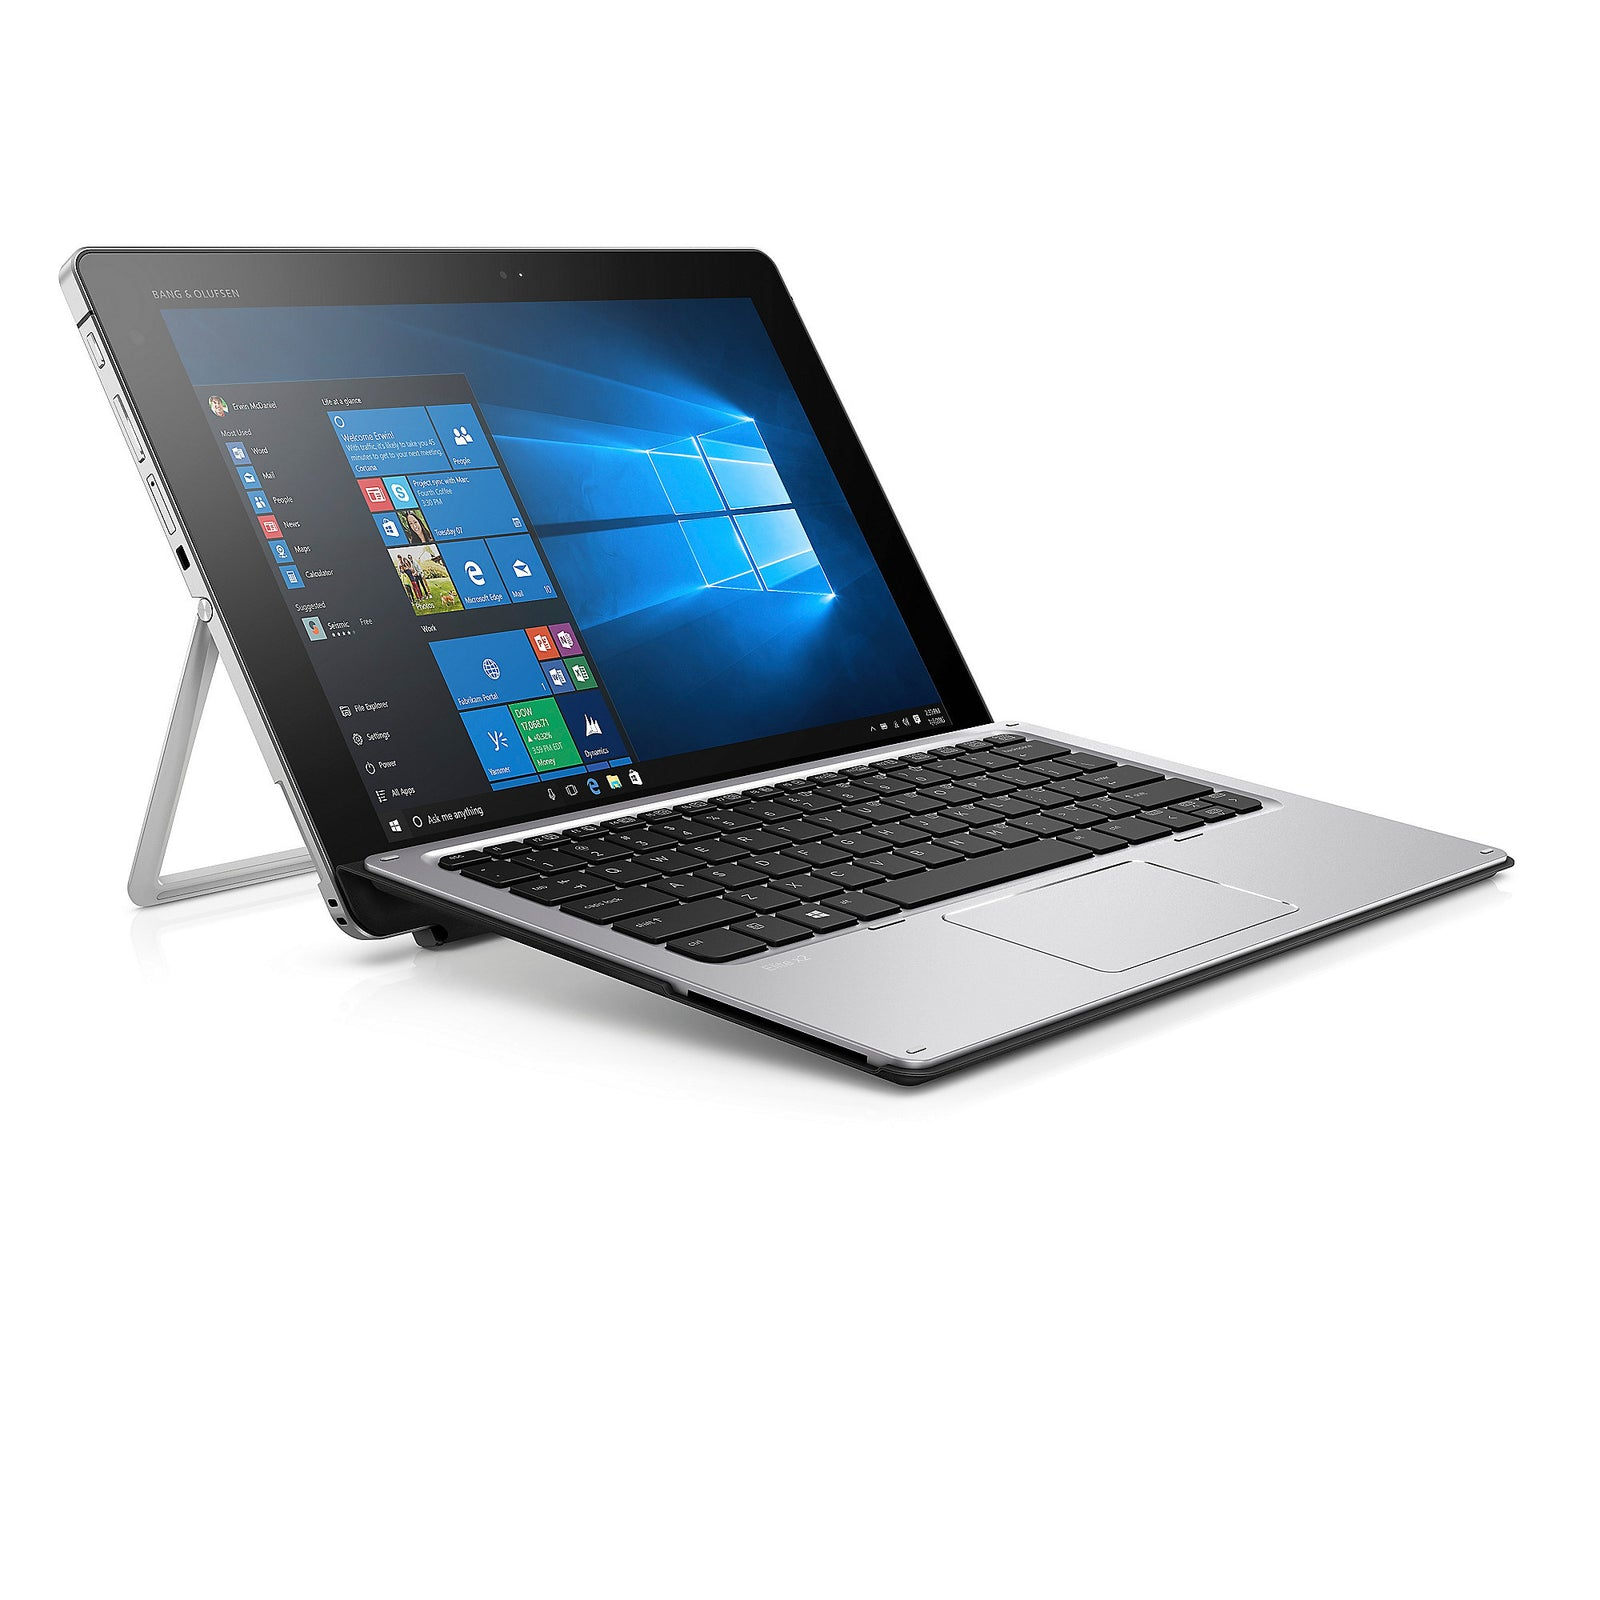 HP Elitebook x2 1012 G1 M7-6Y75  8gb, 256 ssd Windows 10 Pro